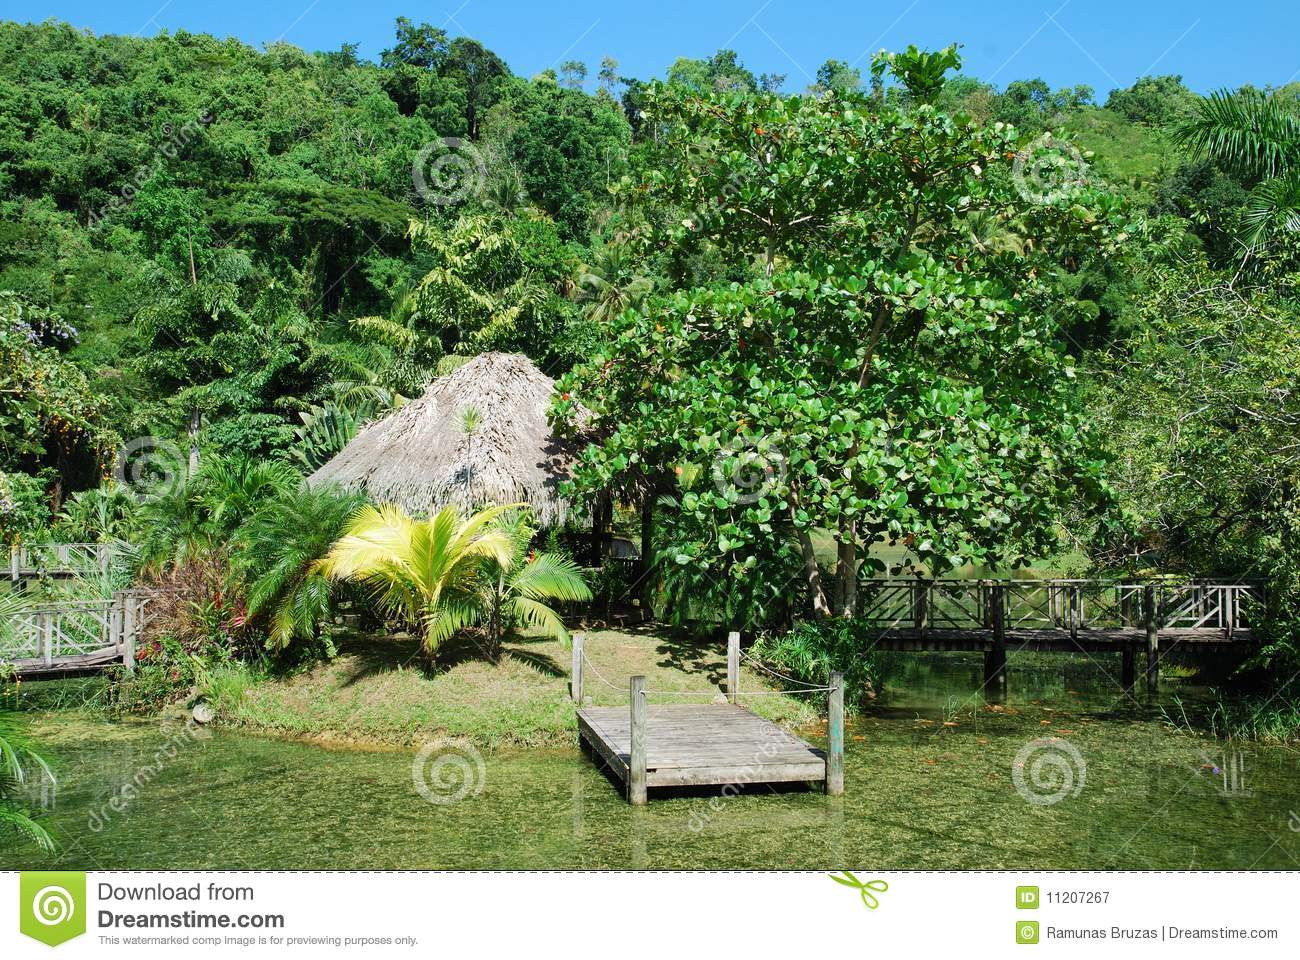 Jamaican nature royalty free stock photography image 11207267